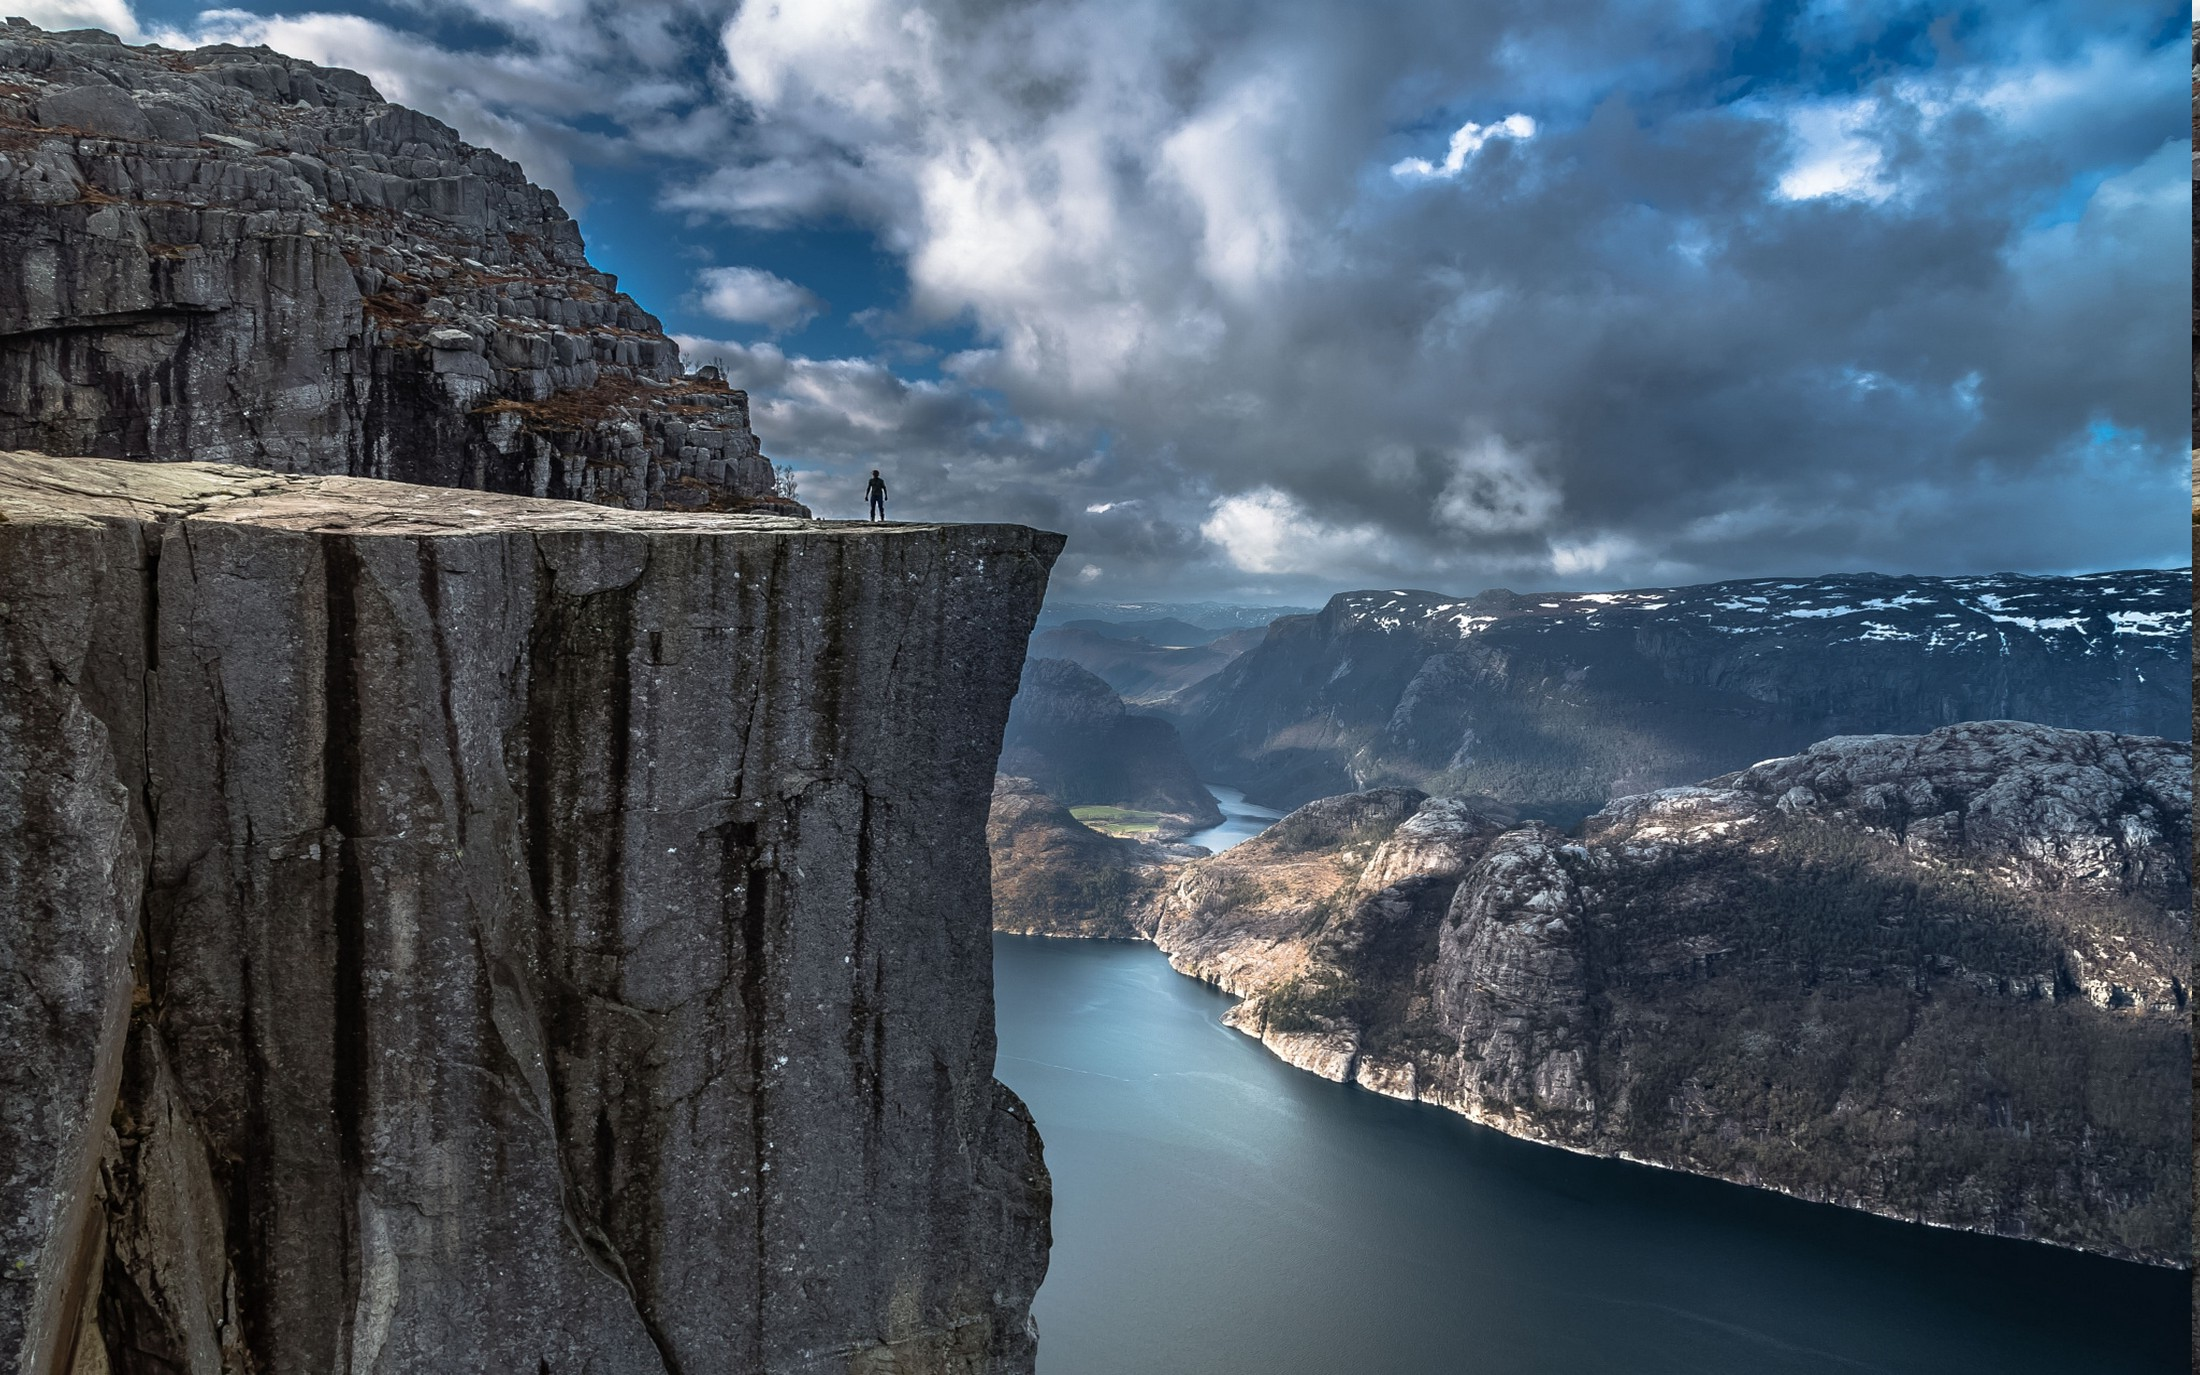 Www Alone Girl Wallpapers Com Nature Landscape Fjord Alone Cliff Mountain Norway